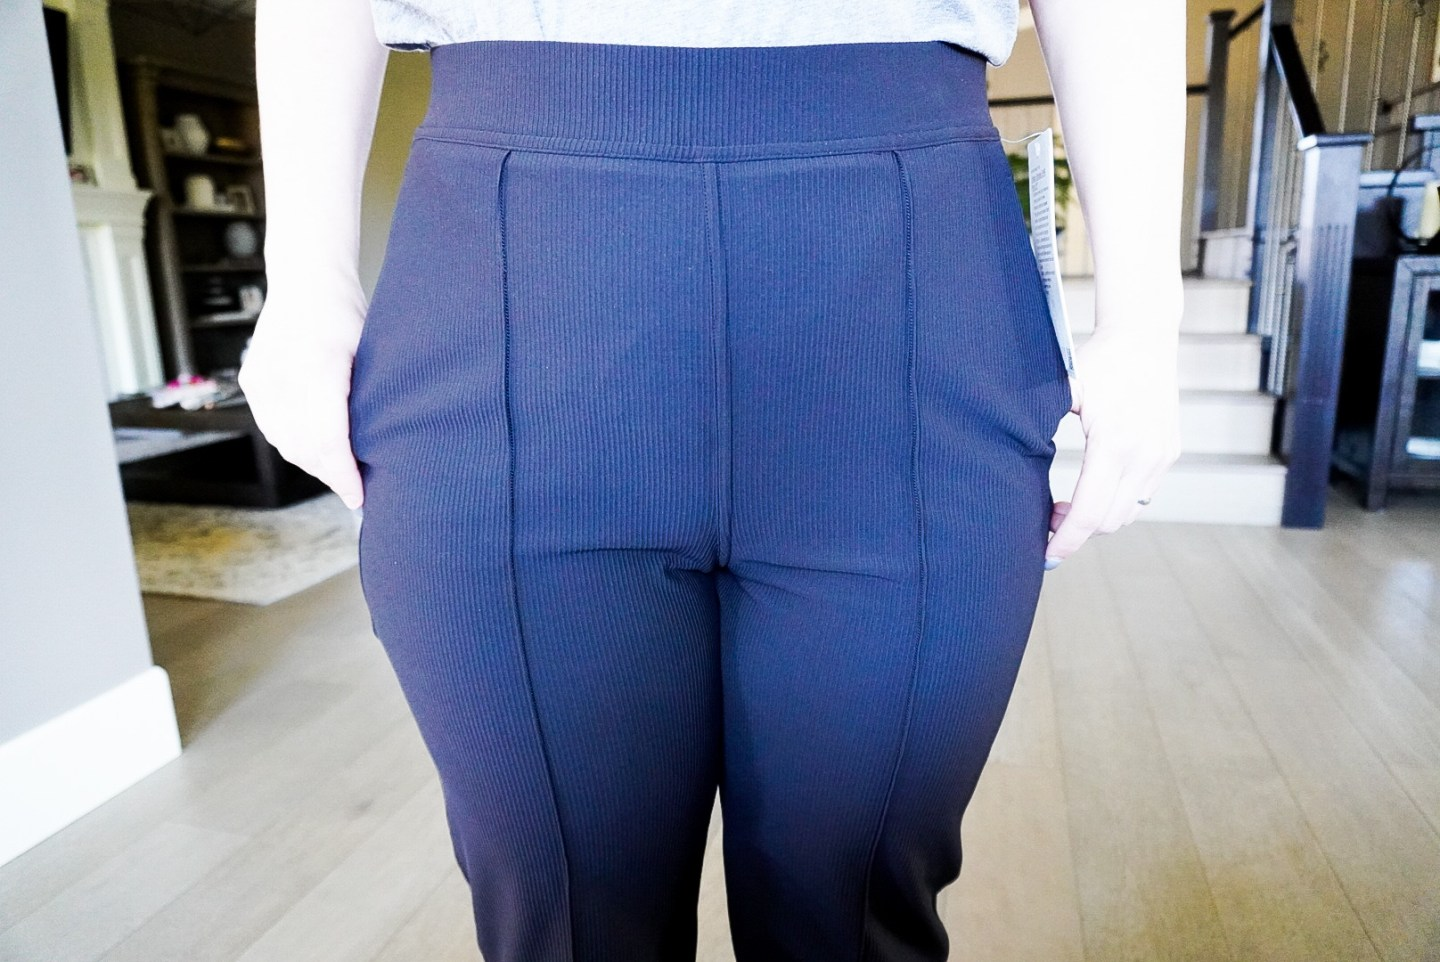 Lululemon-Urban Strides Super High-Rise Pant